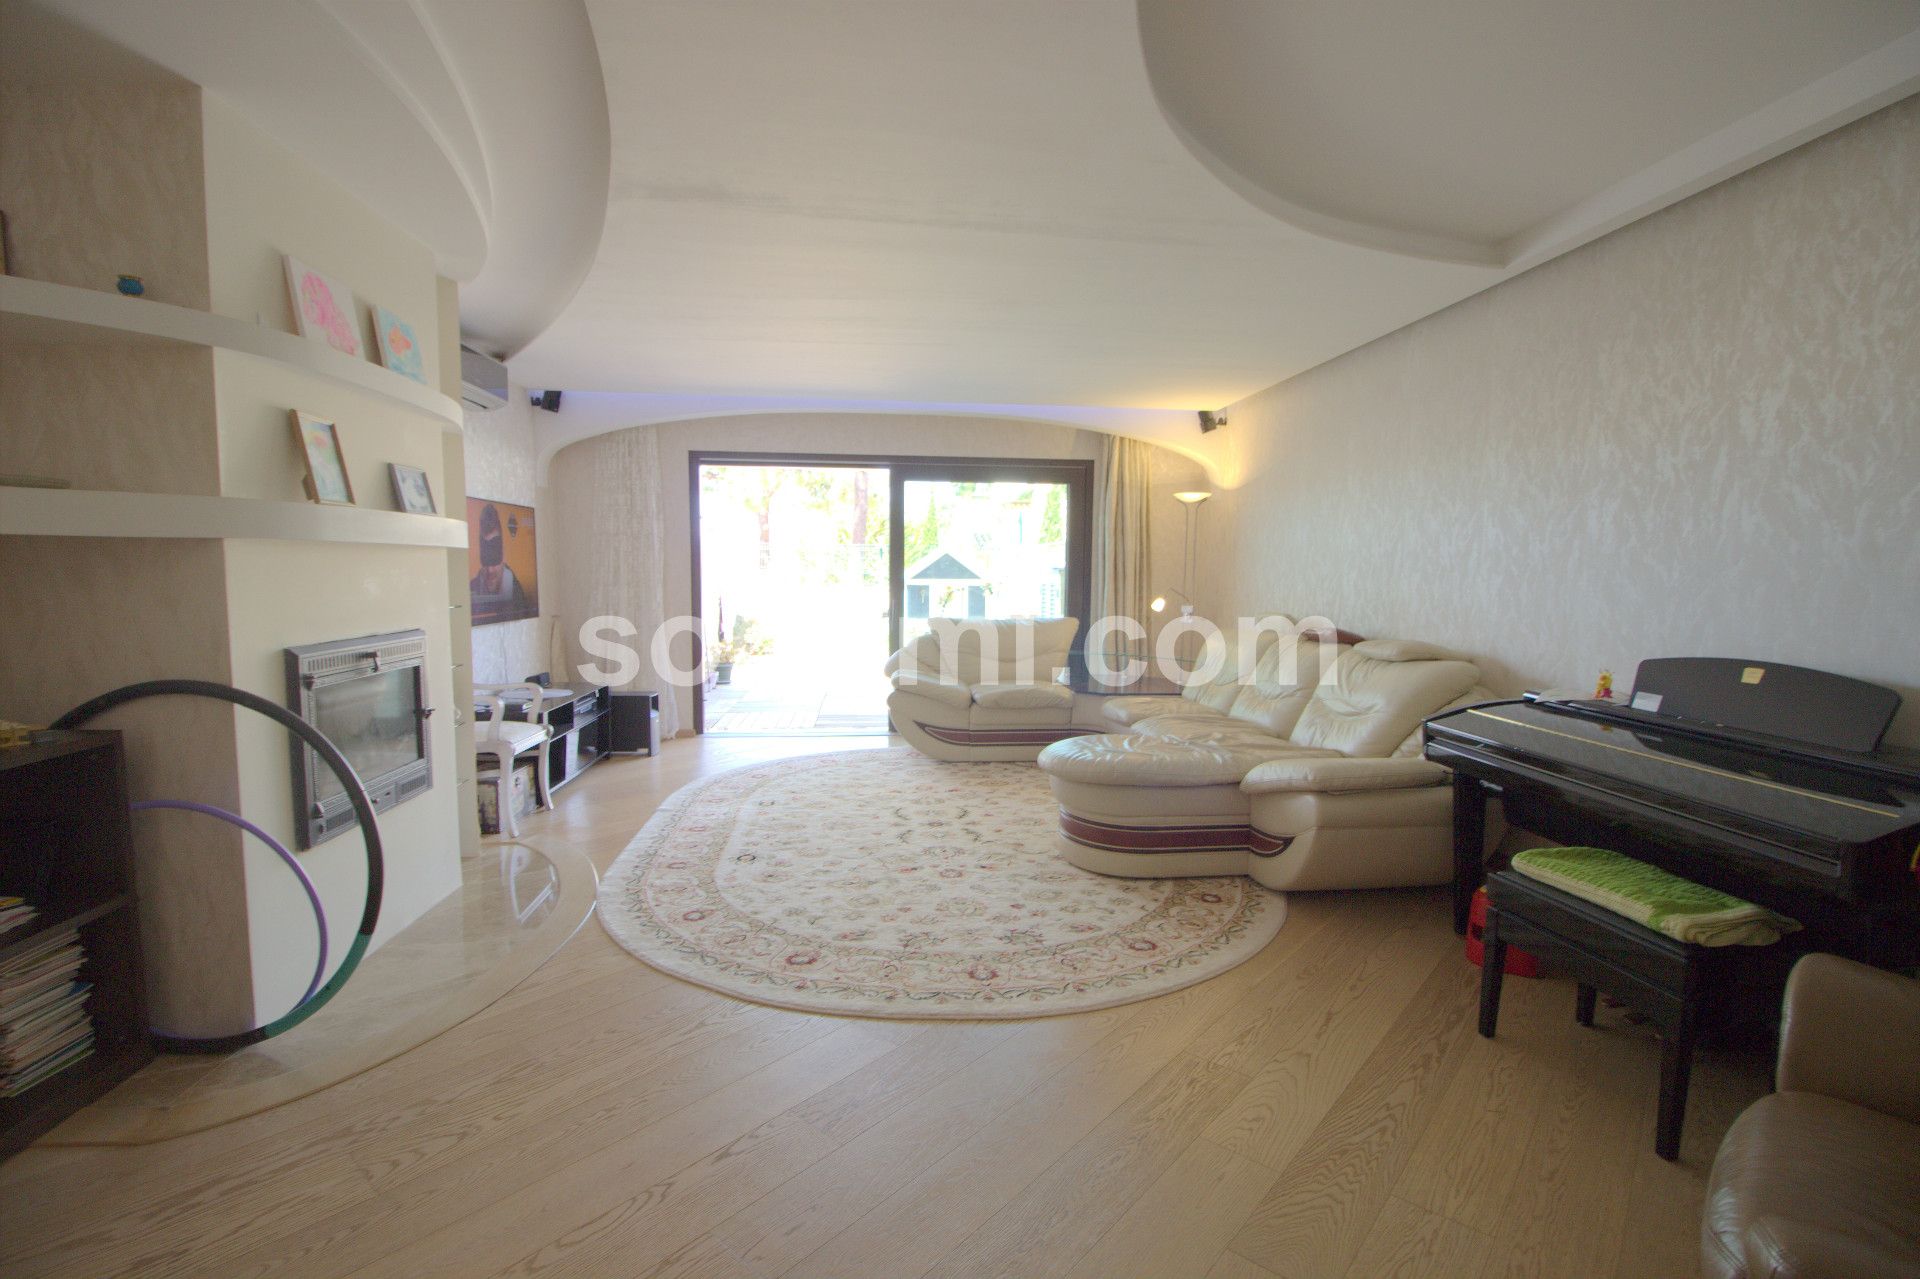 Town House T2 Algarve, Vale do Lobo